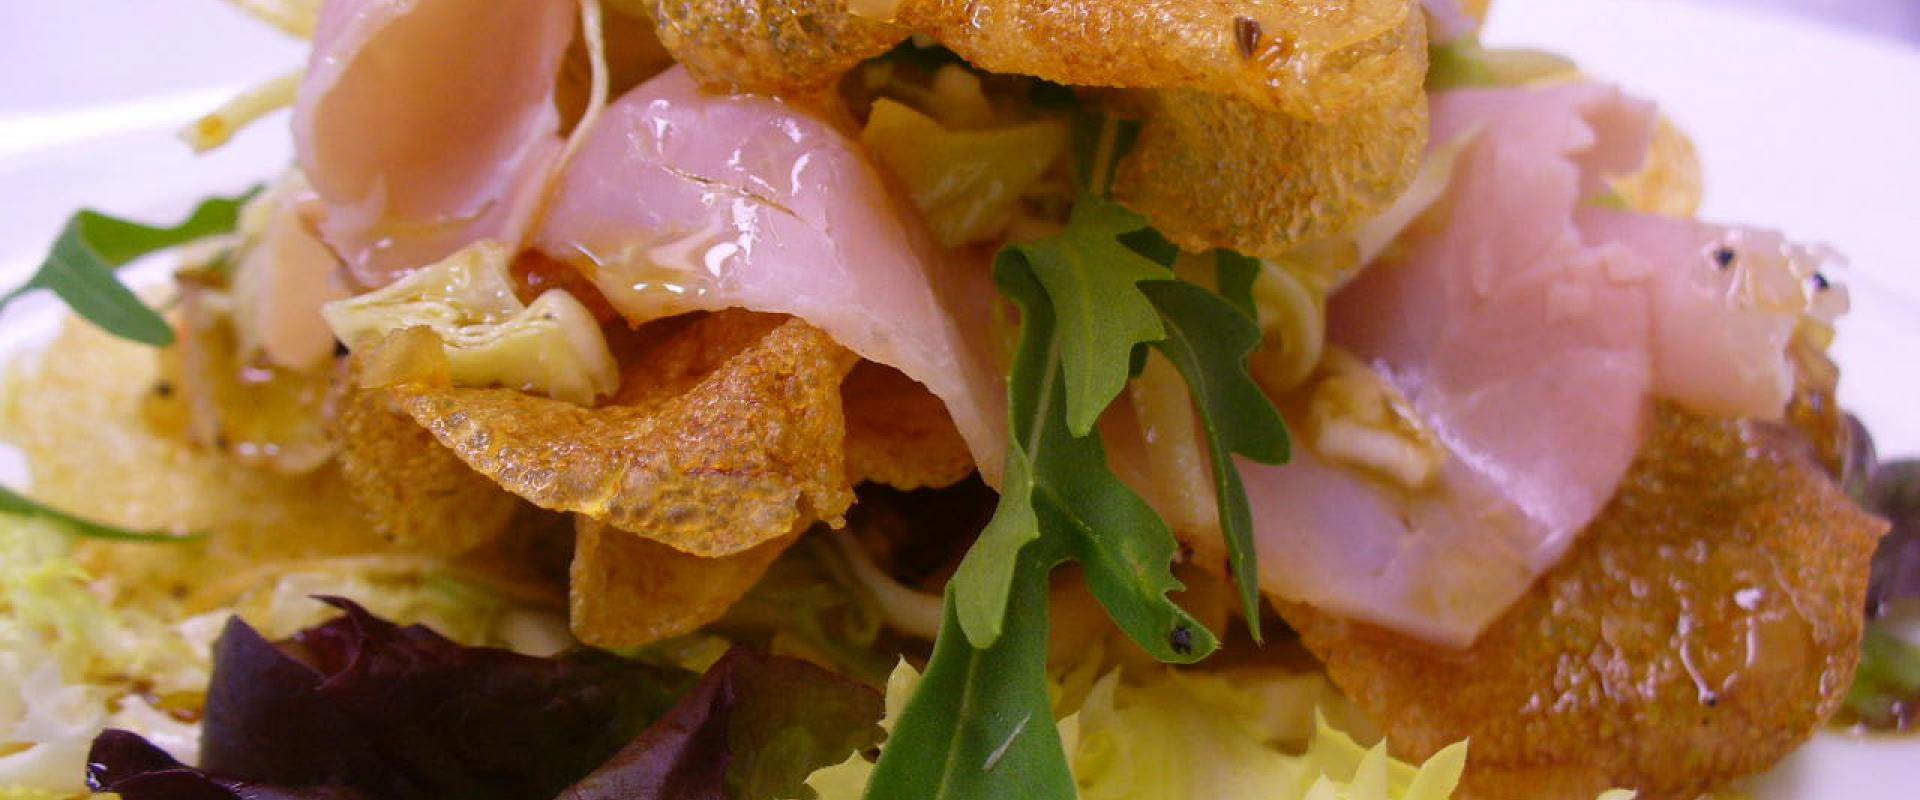 taste of typical products in Cison di Valmarino